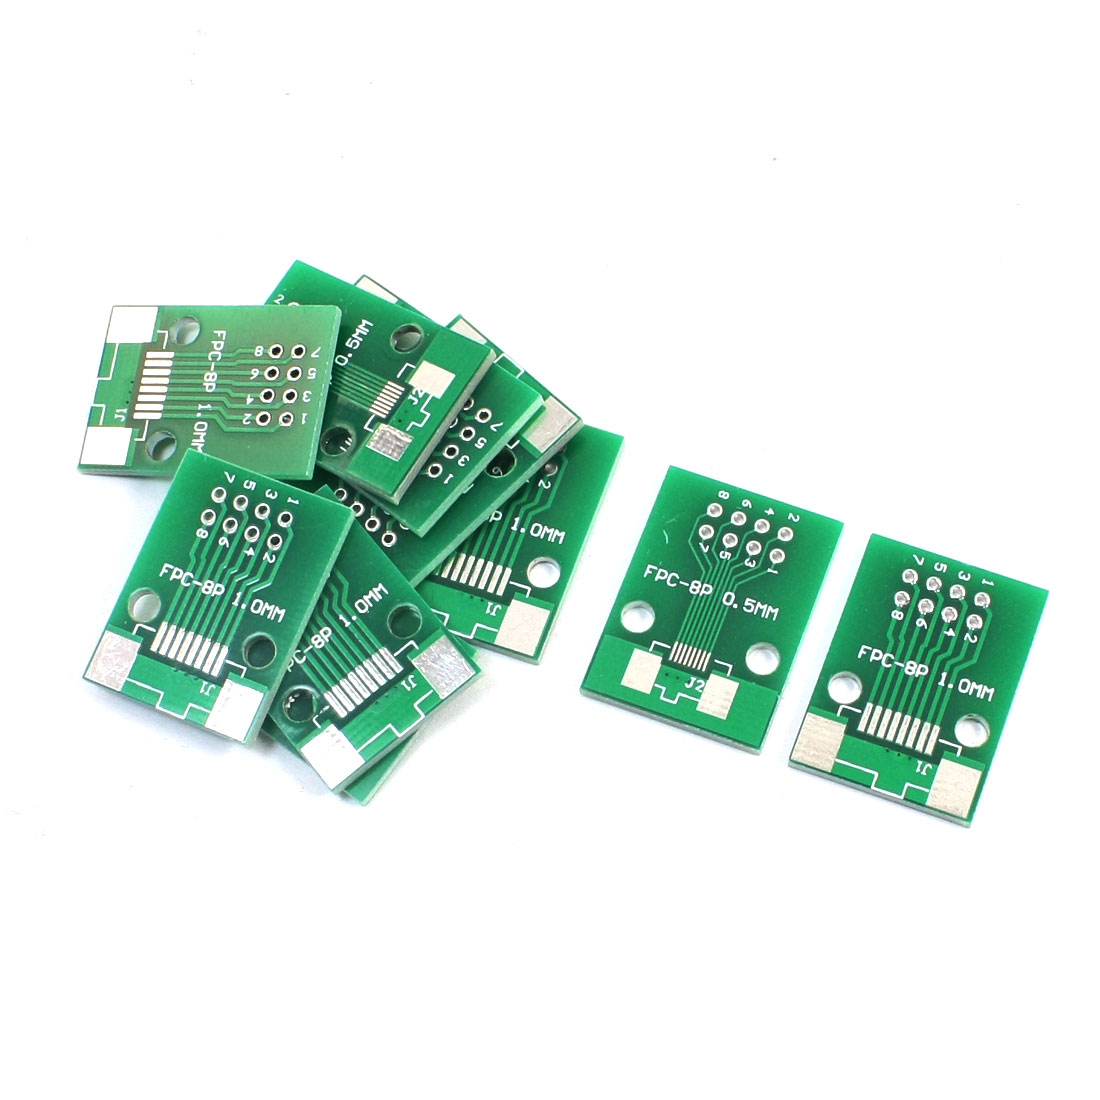 10Pcs Dual Side FPC-8P FFC-8P 0.5mm 1mm to DIP8 2.54mm Pitch PCB Board Plate Adapter Socket Converter